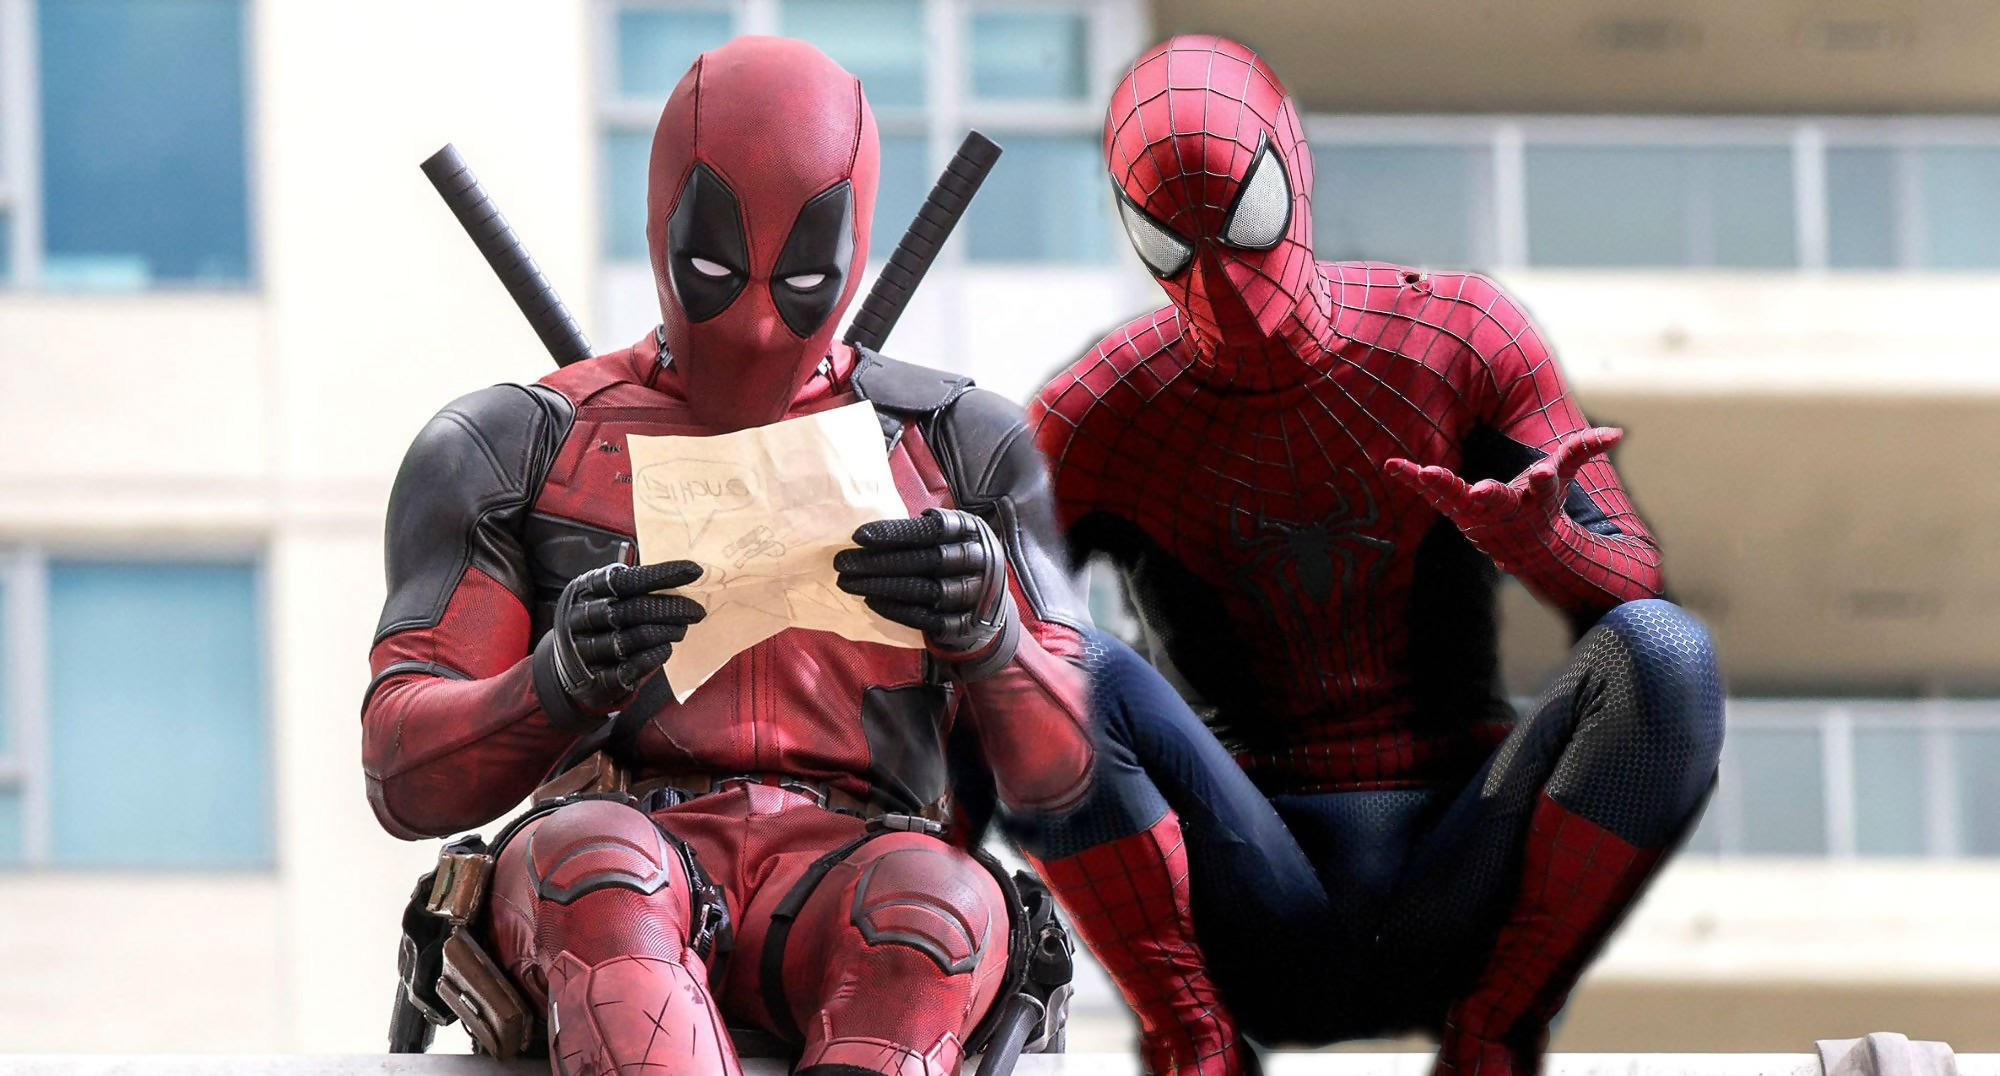 Deadpool Face A Spider Man Dans Civil War Grace A Un Fan